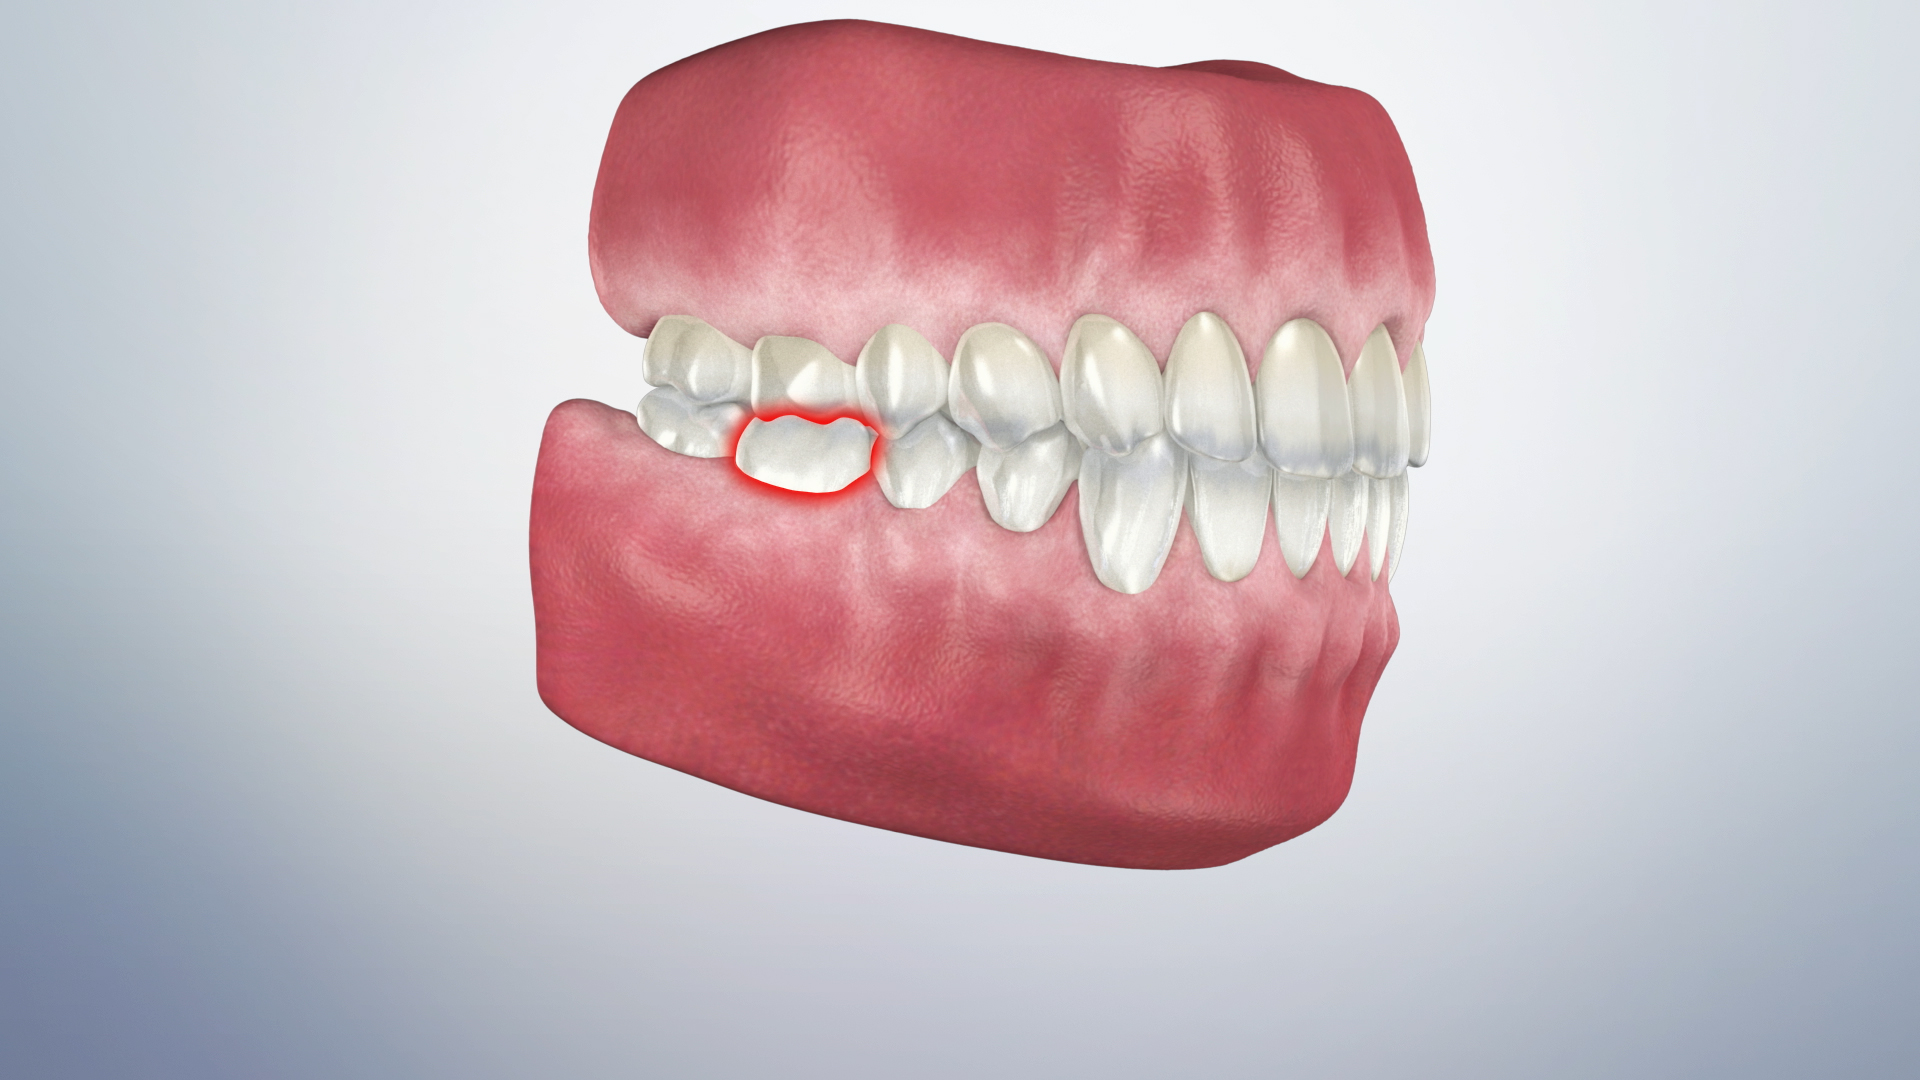 Thumbnail for a video on Causes of Tooth Pain